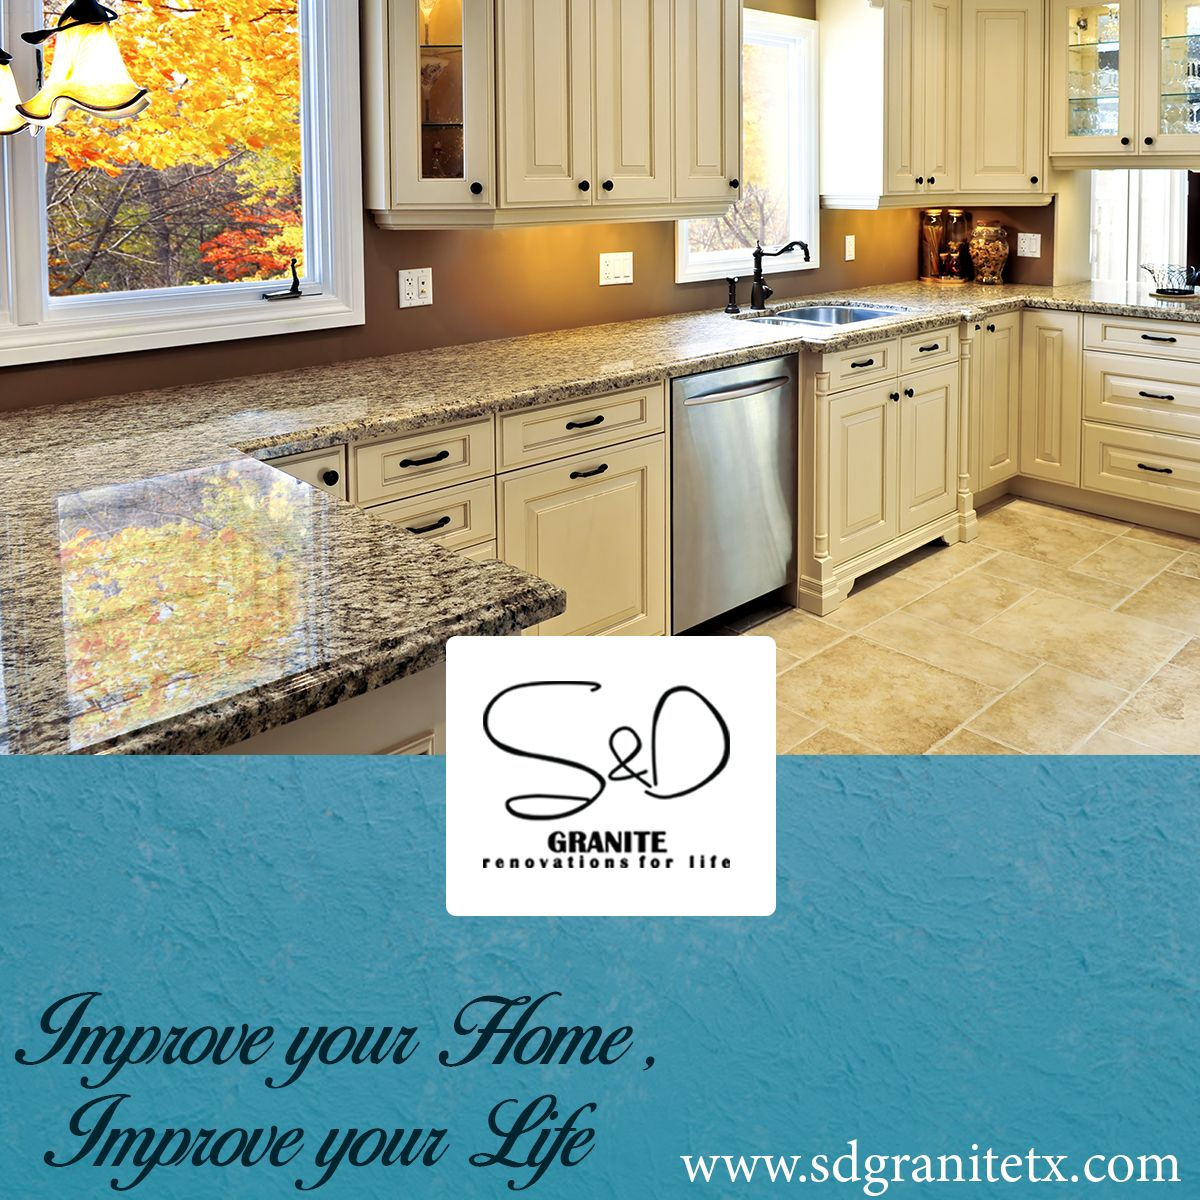 If you're looking for a kitchen renovation in the Rockwall ...